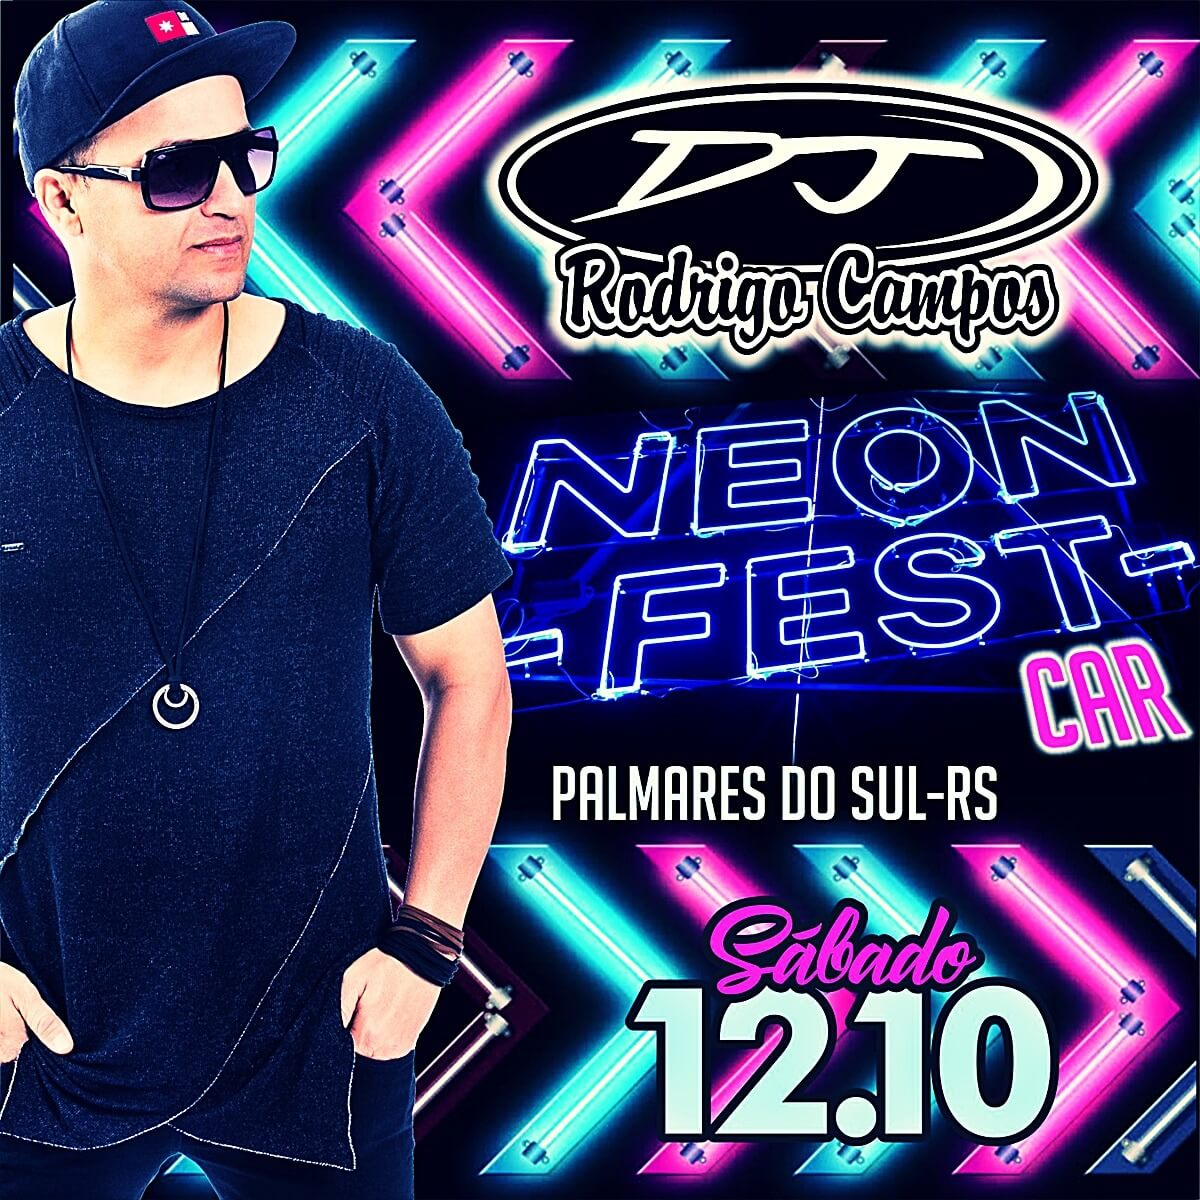 Neon Fest Car Palmares do Sul RS